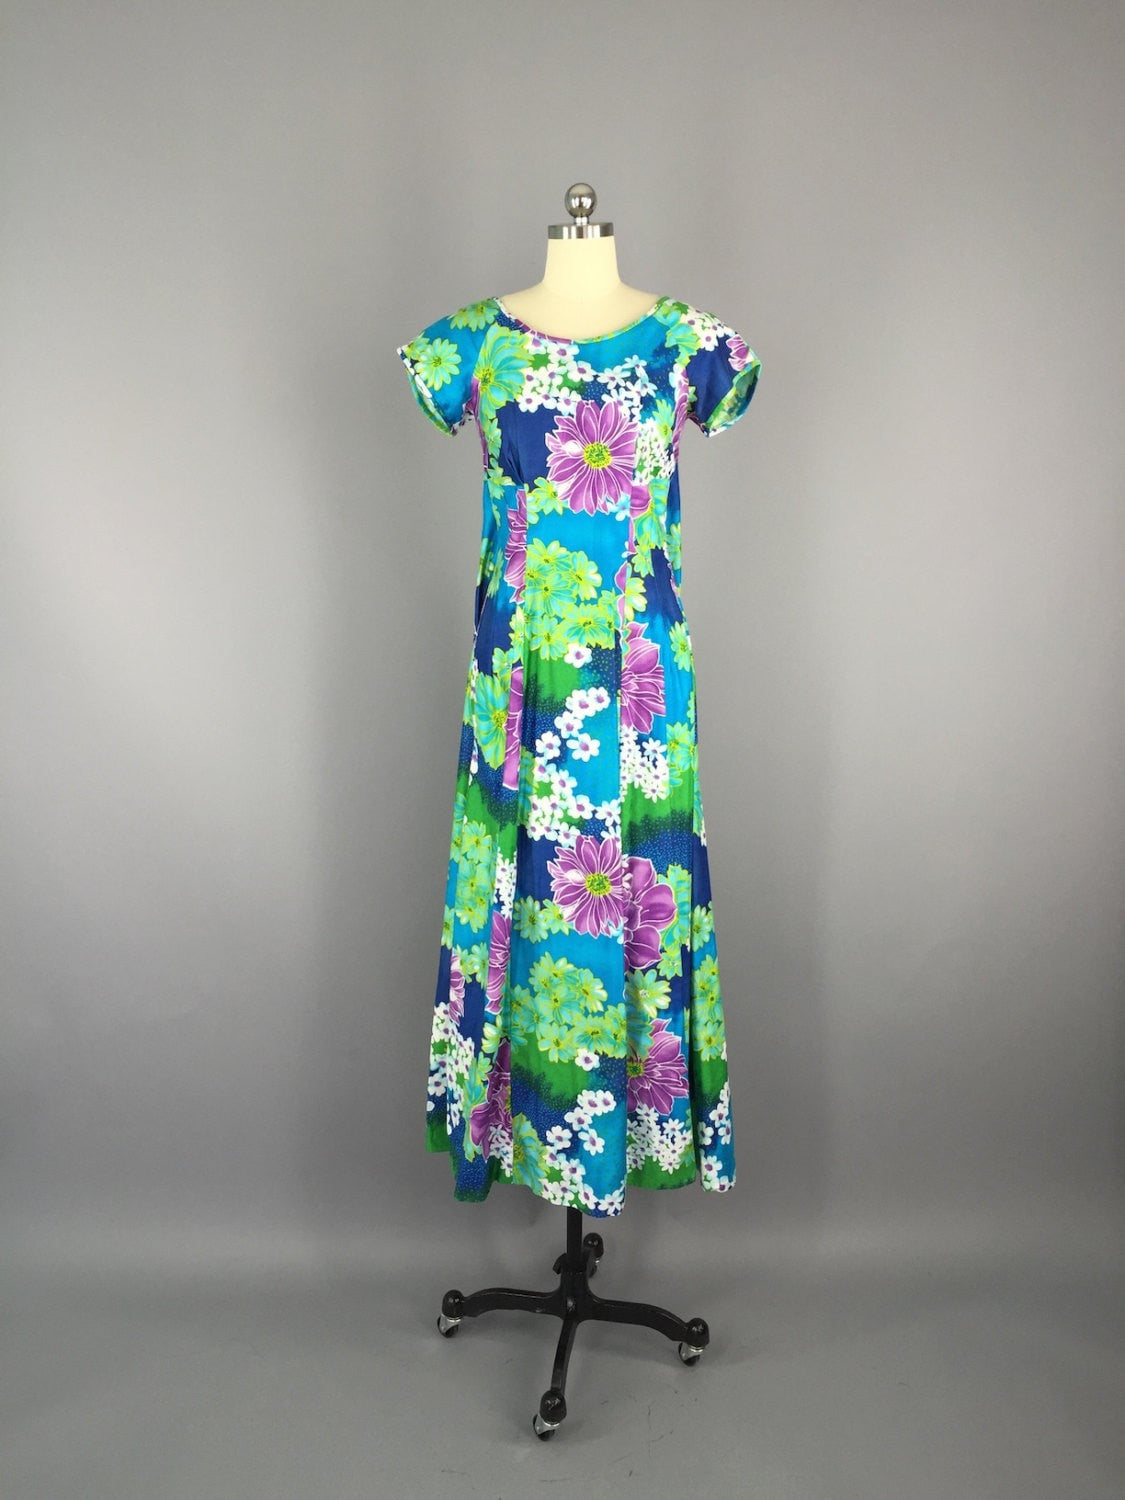 1960s Vintage Blue Hawaiian Maxi Dress Dress ThisBlueBird - Sale